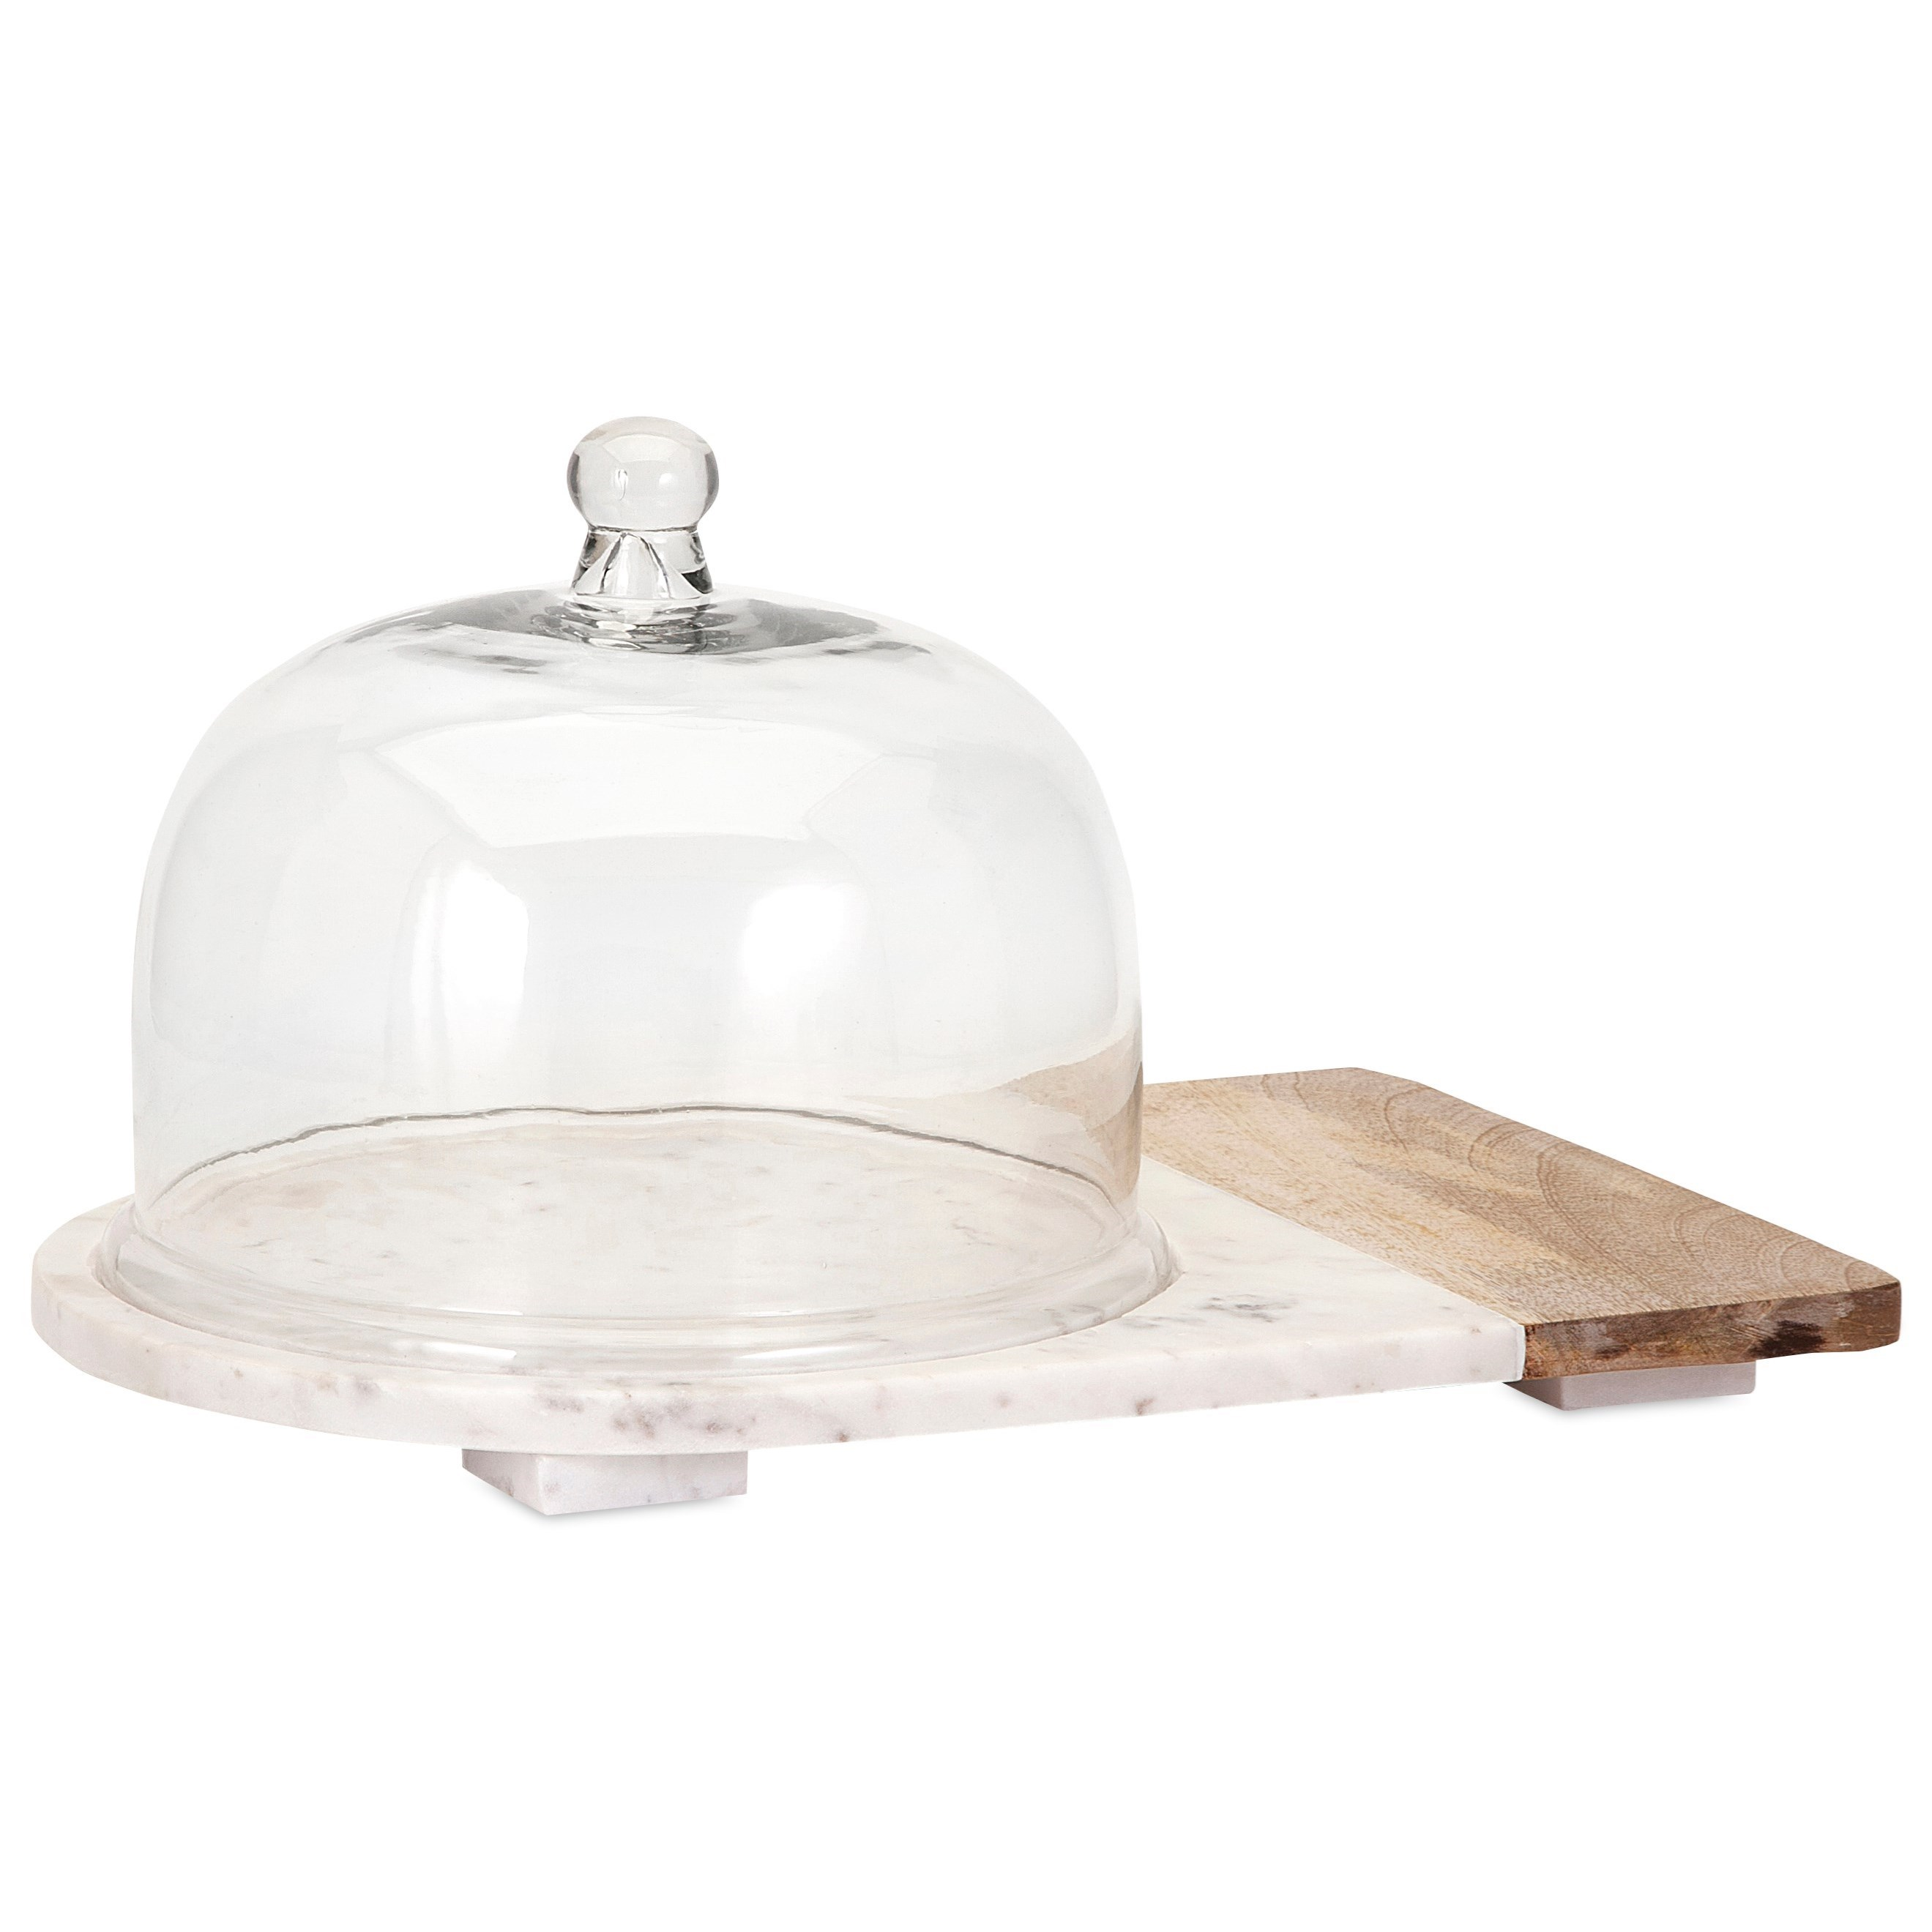 Accessories Lyna Marble and Wood Cheese Dome by IMAX Worldwide Home at Alison Craig Home Furnishings